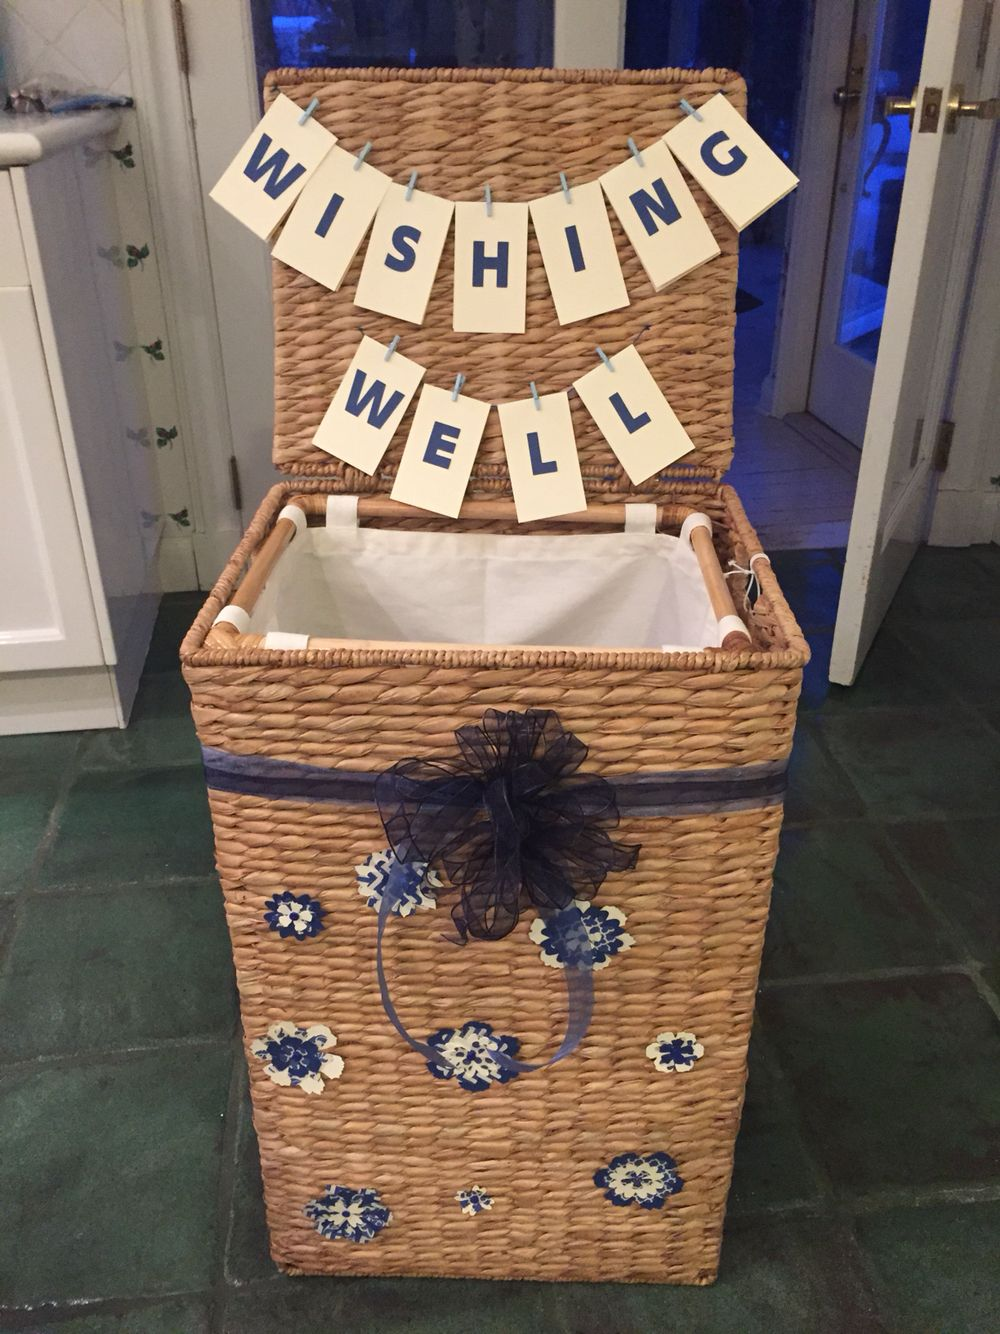 Beautiful wishing well and wishing well hamper is also a